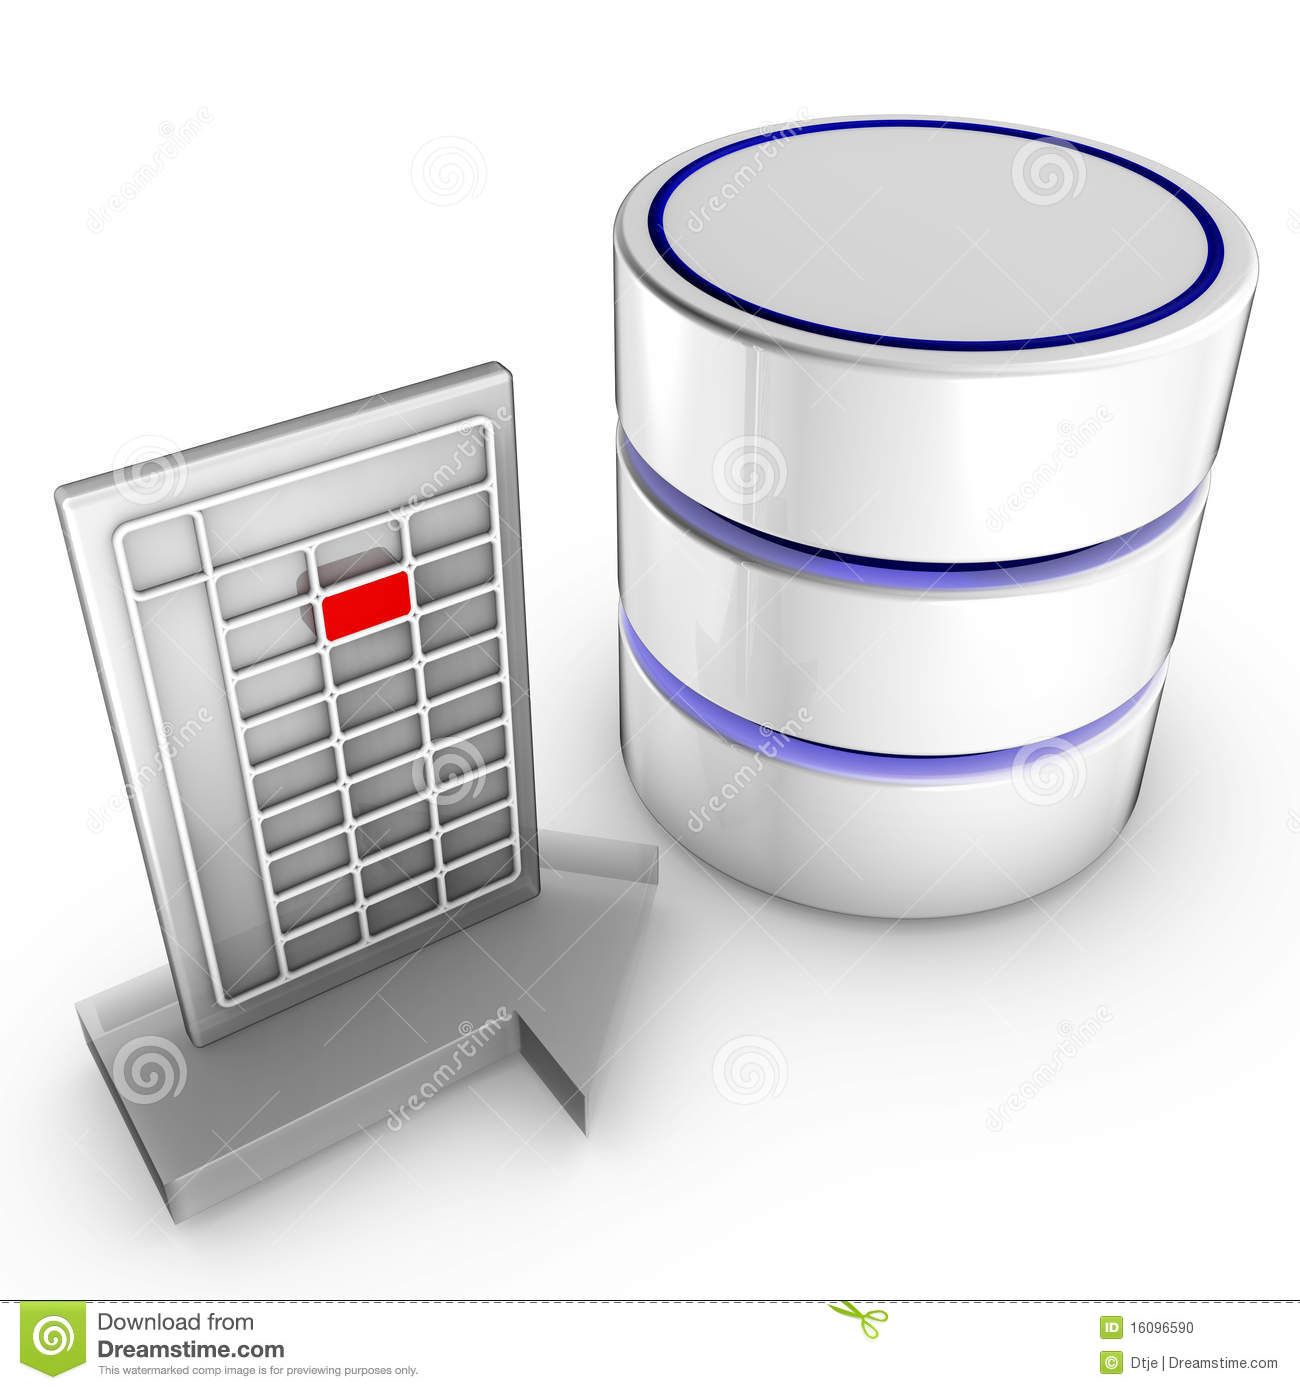 Import data into a database